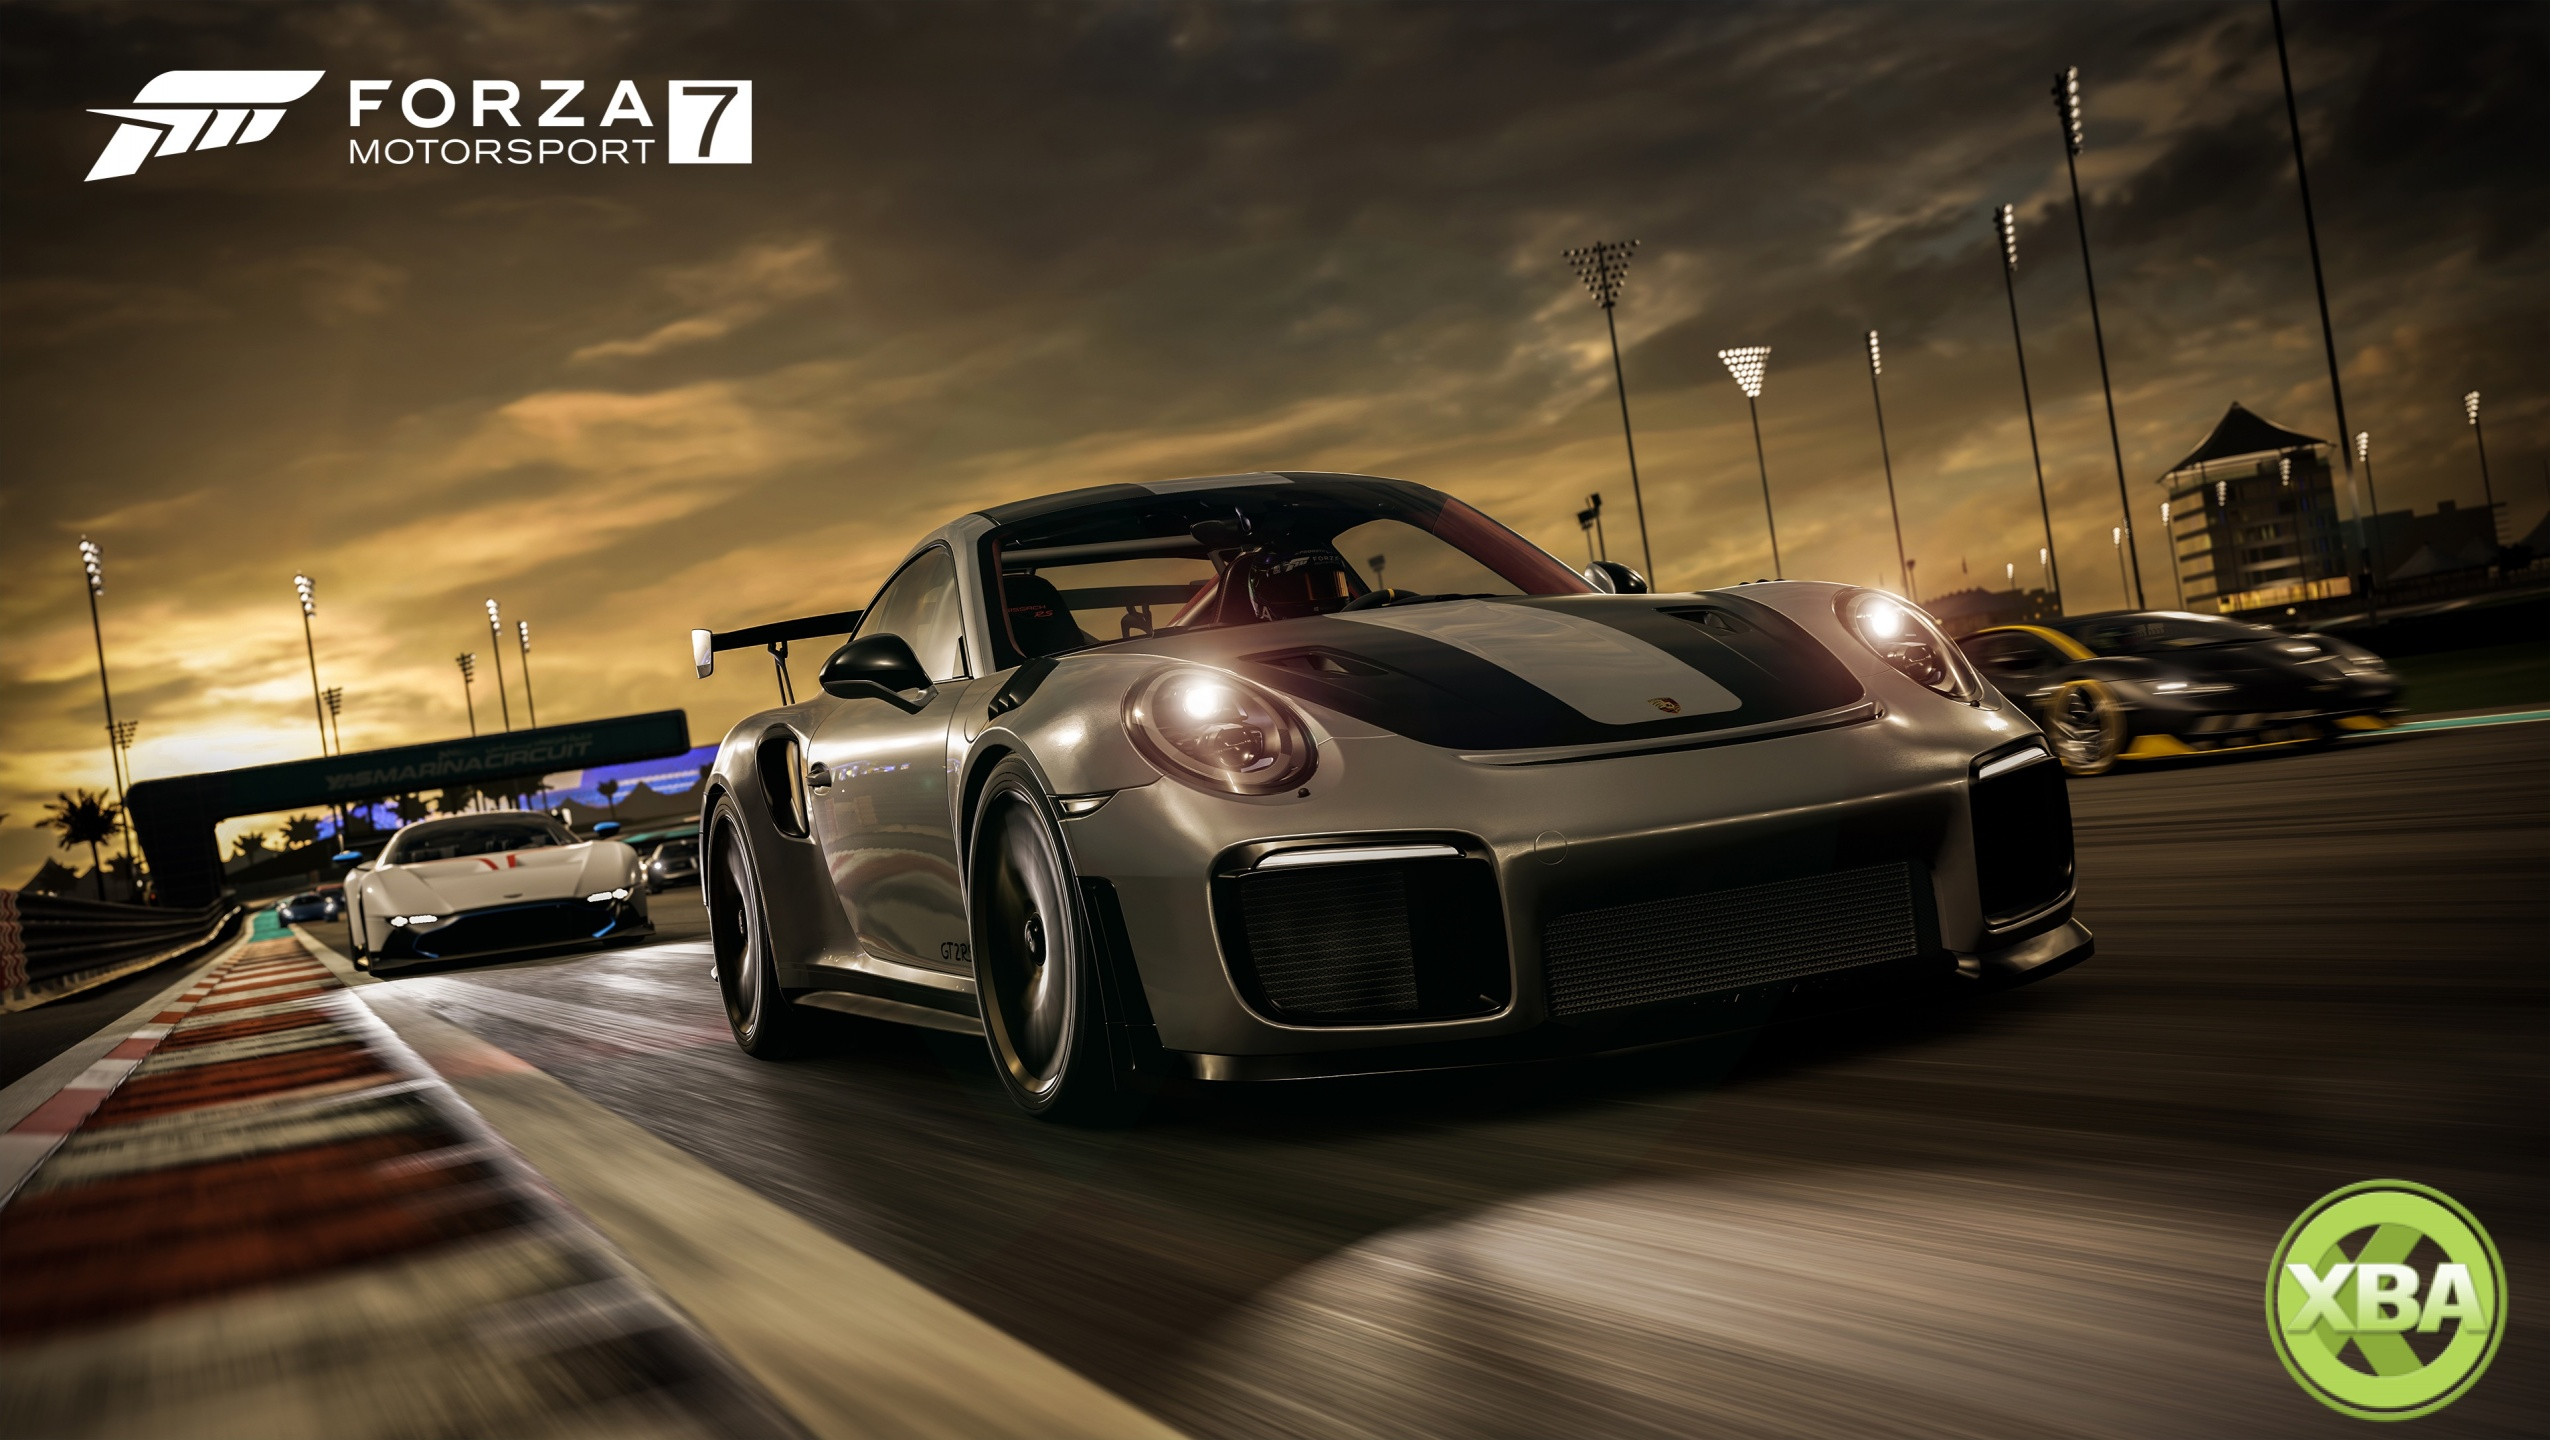 Forza Motorsport 7 goes gold, demo launches September 19